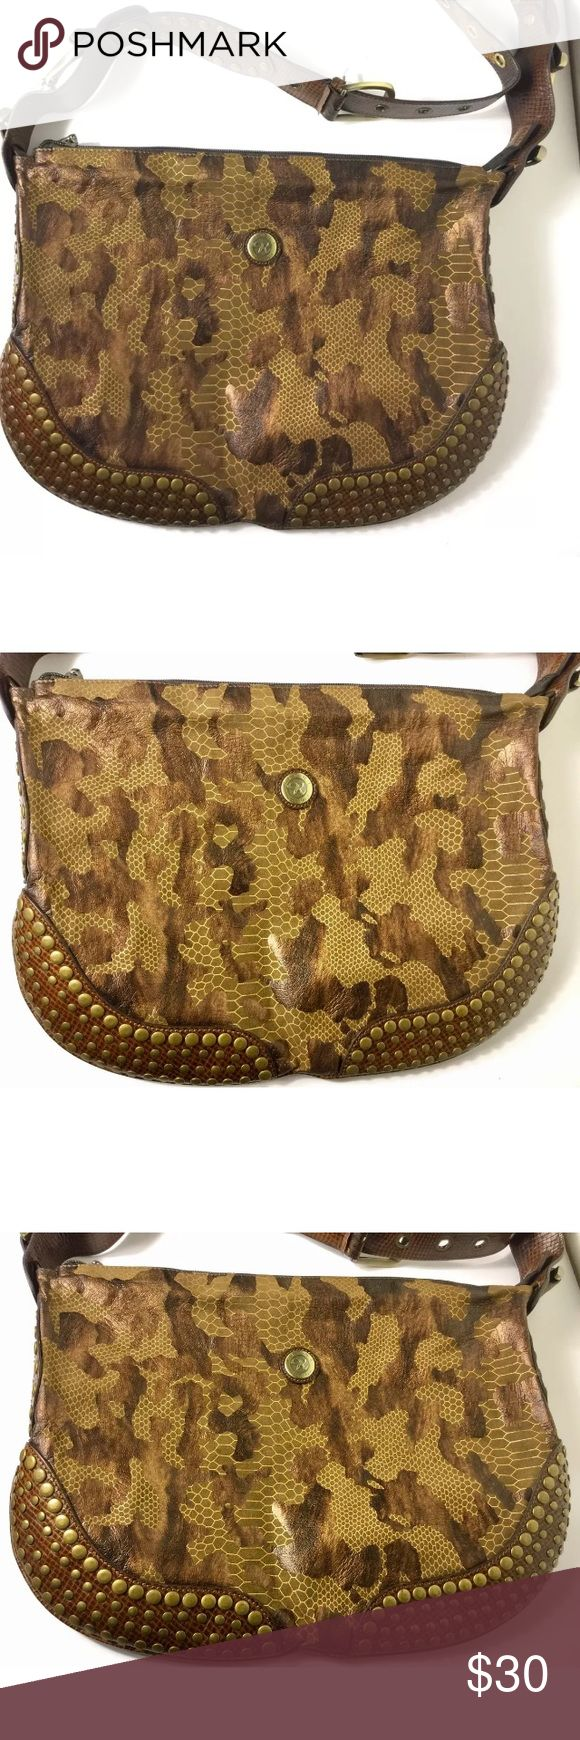 "Rioni Moda Italia Crossbody Animal Snake Print Bag Feels like leather, but not sure of material . Bronze color..14"" long, adjustable strap. Excellent condition. Rioni Bags Crossbody Bags"